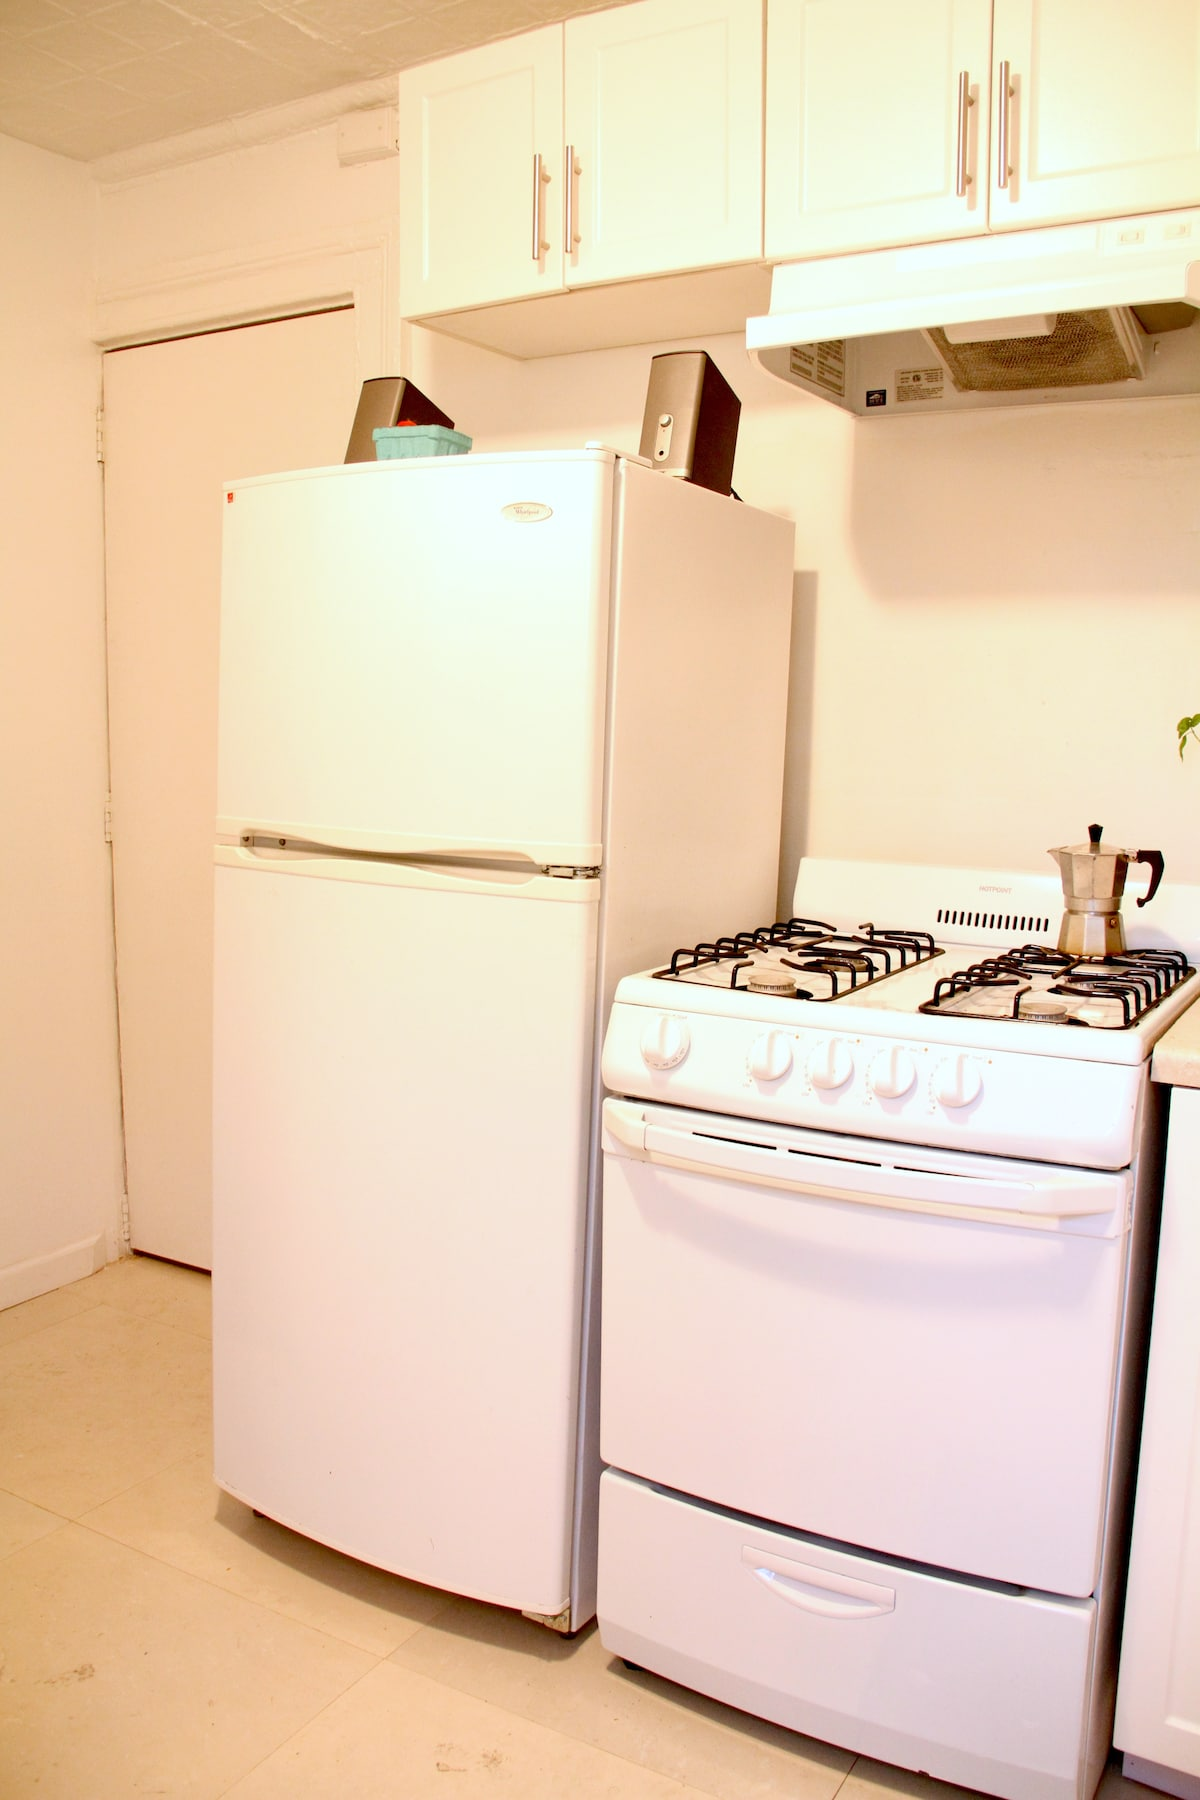 Gas oven and new fridge, the door behind is one of the two entrances